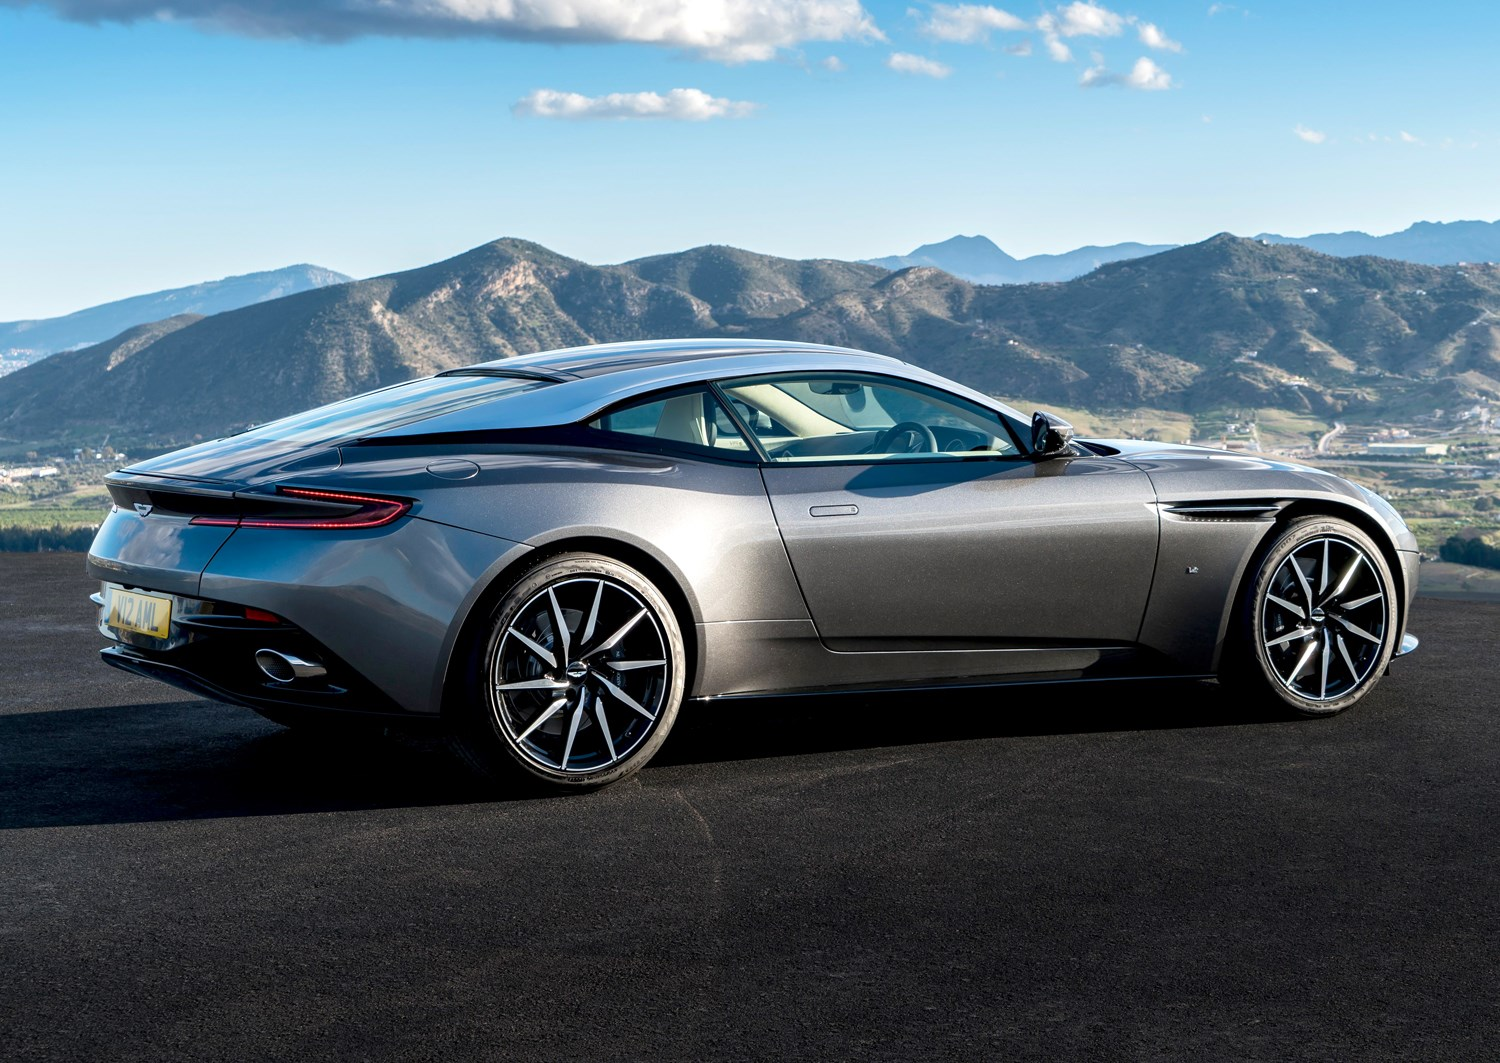 Aston Martin Used Car Ad >> Aston Martin DB11 Coupe (2016 - ) Photos | Parkers